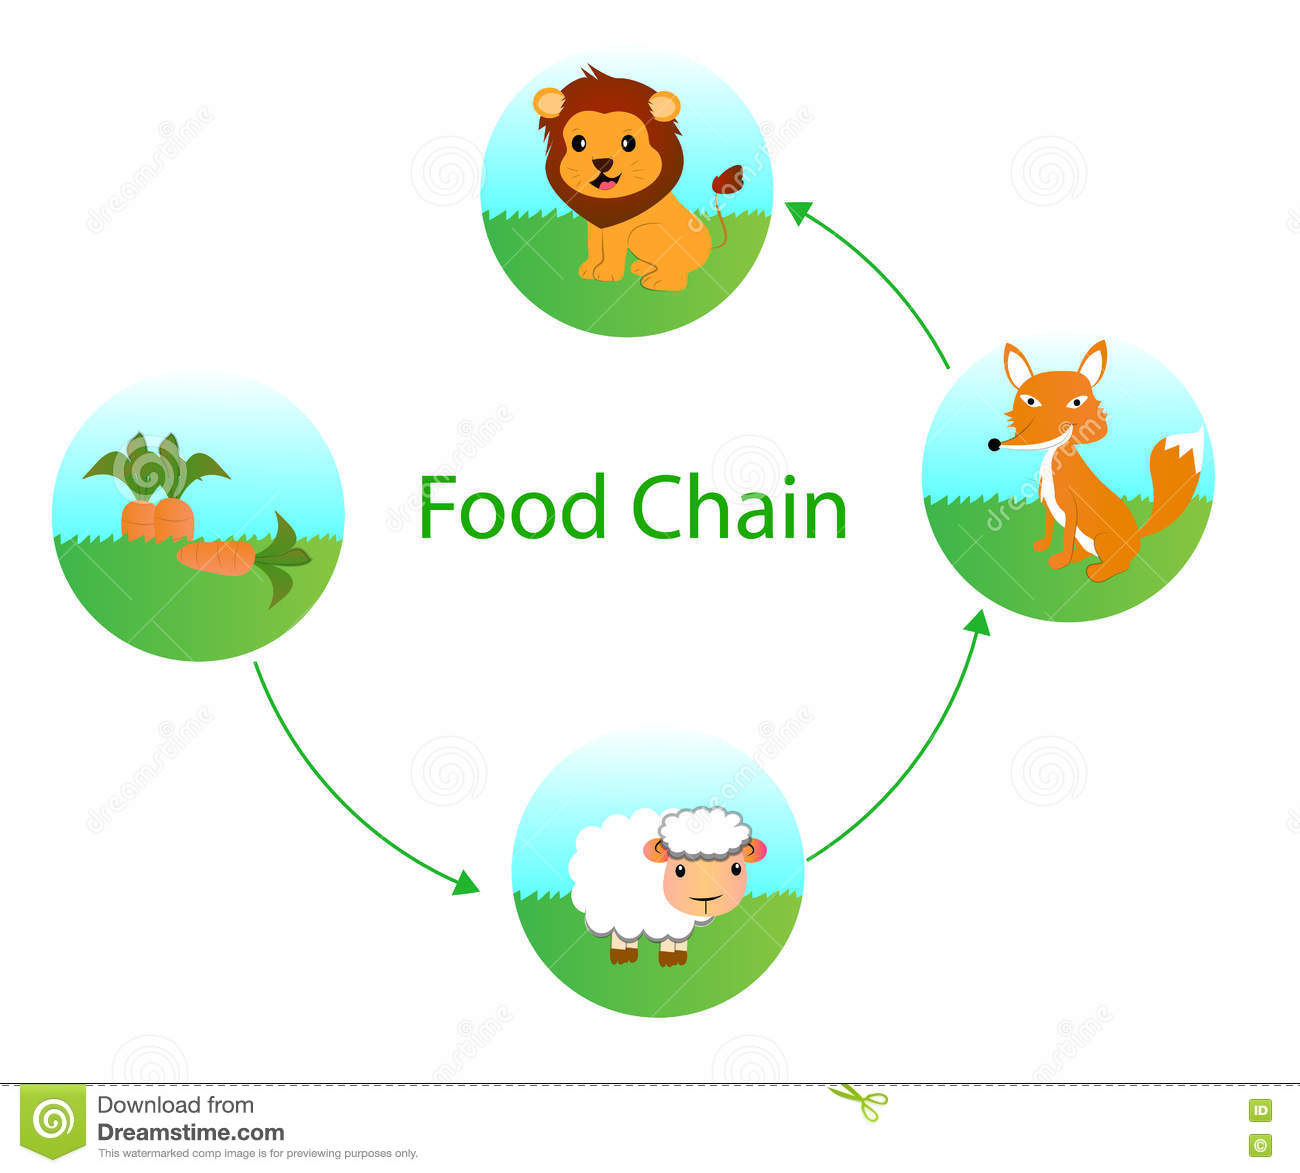 Food chain cliparts banner royalty free stock Food chains clipart 4 » Clipart Station banner royalty free stock